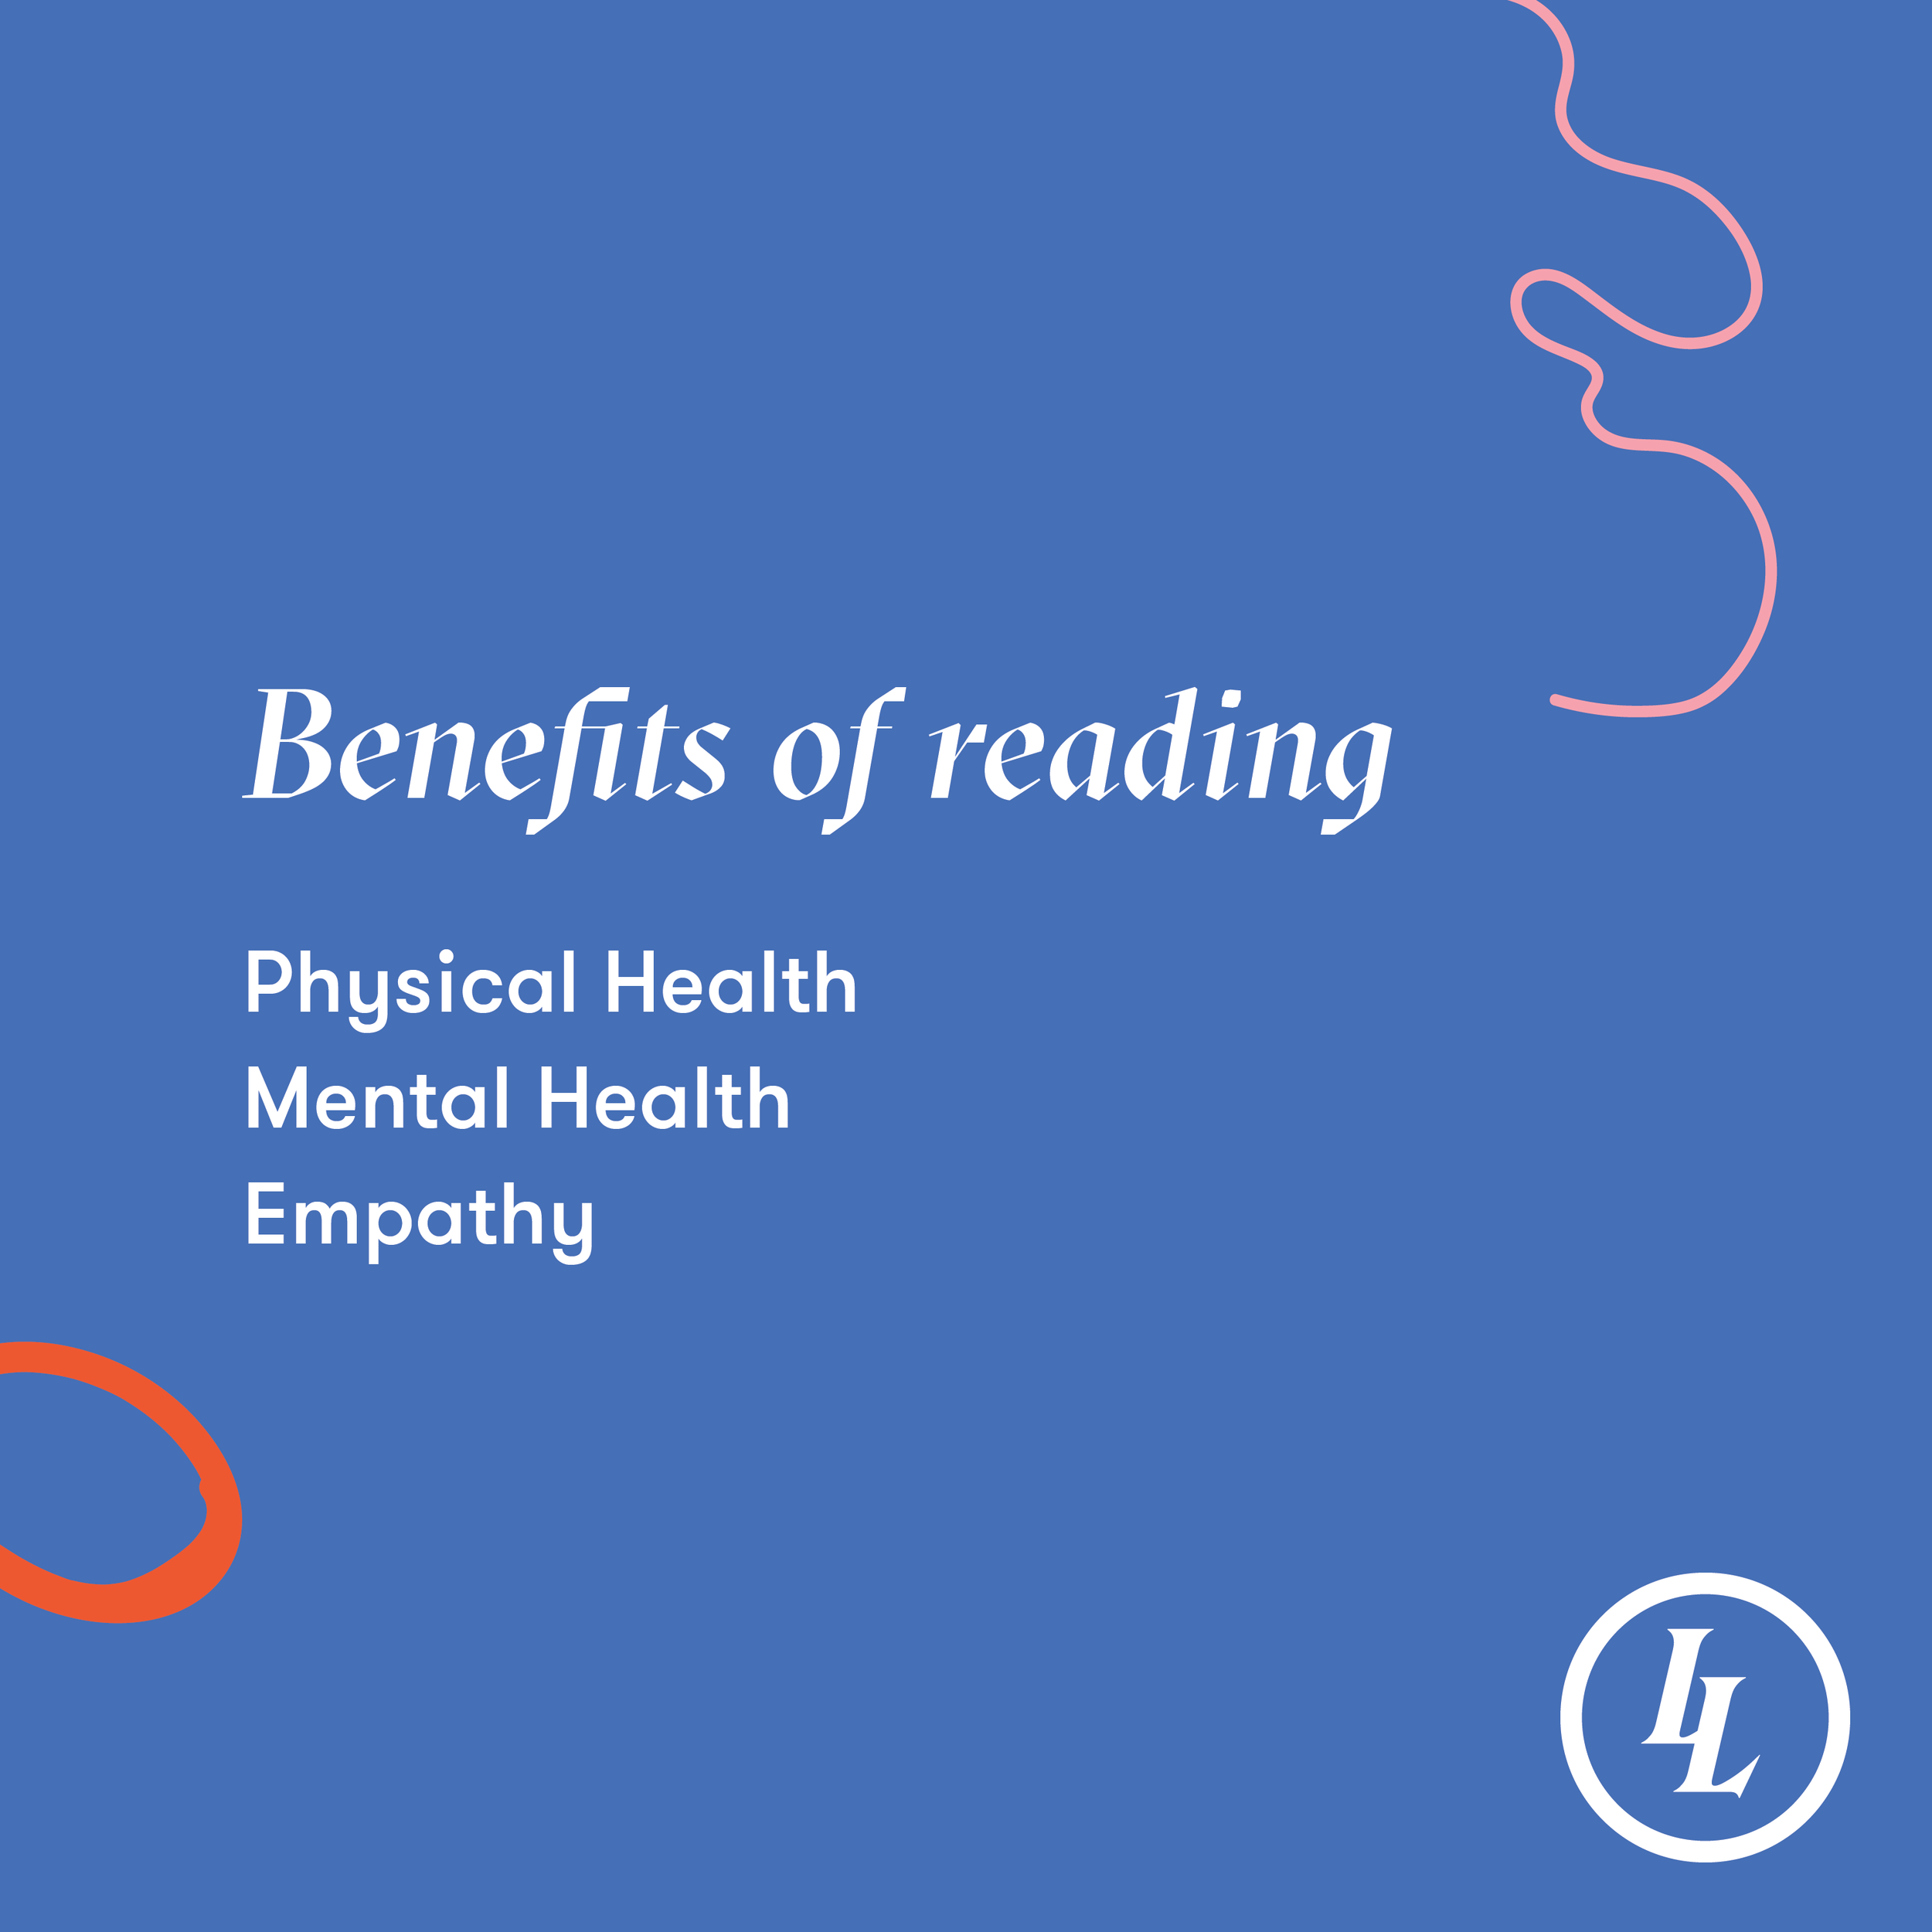 benefits_of_reading.png